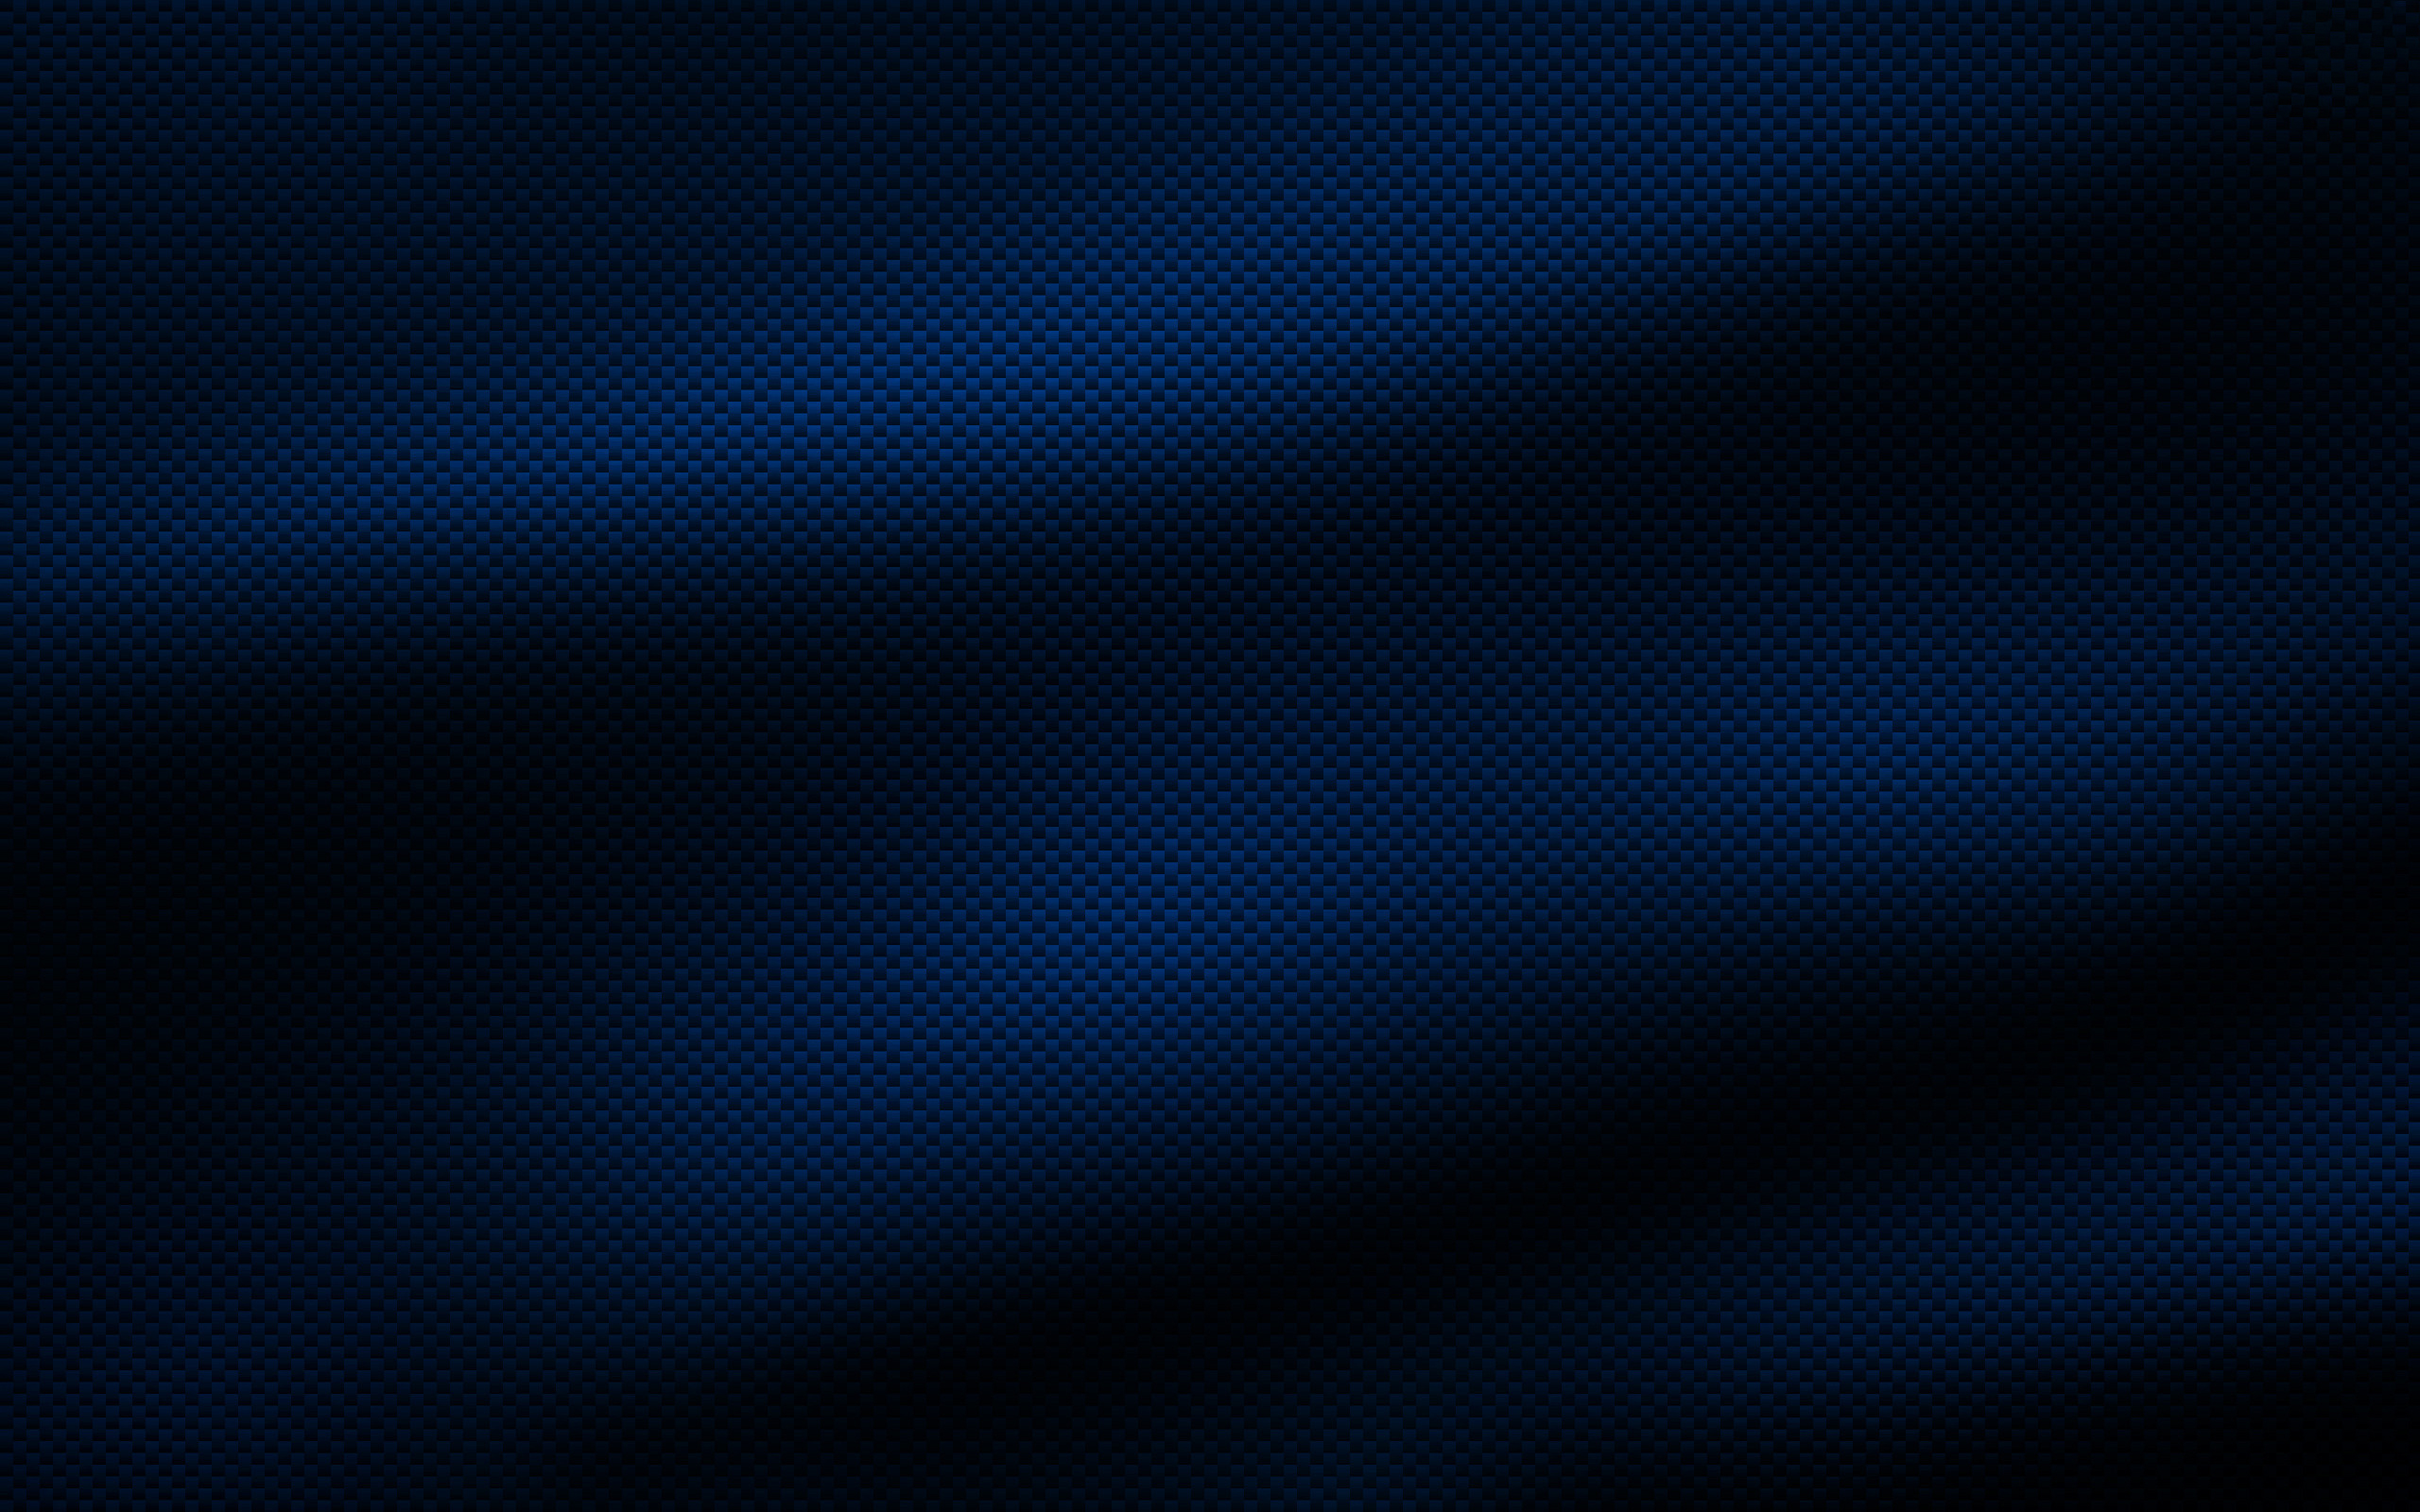 Blue carbon fiber wallpaper HD abstract.